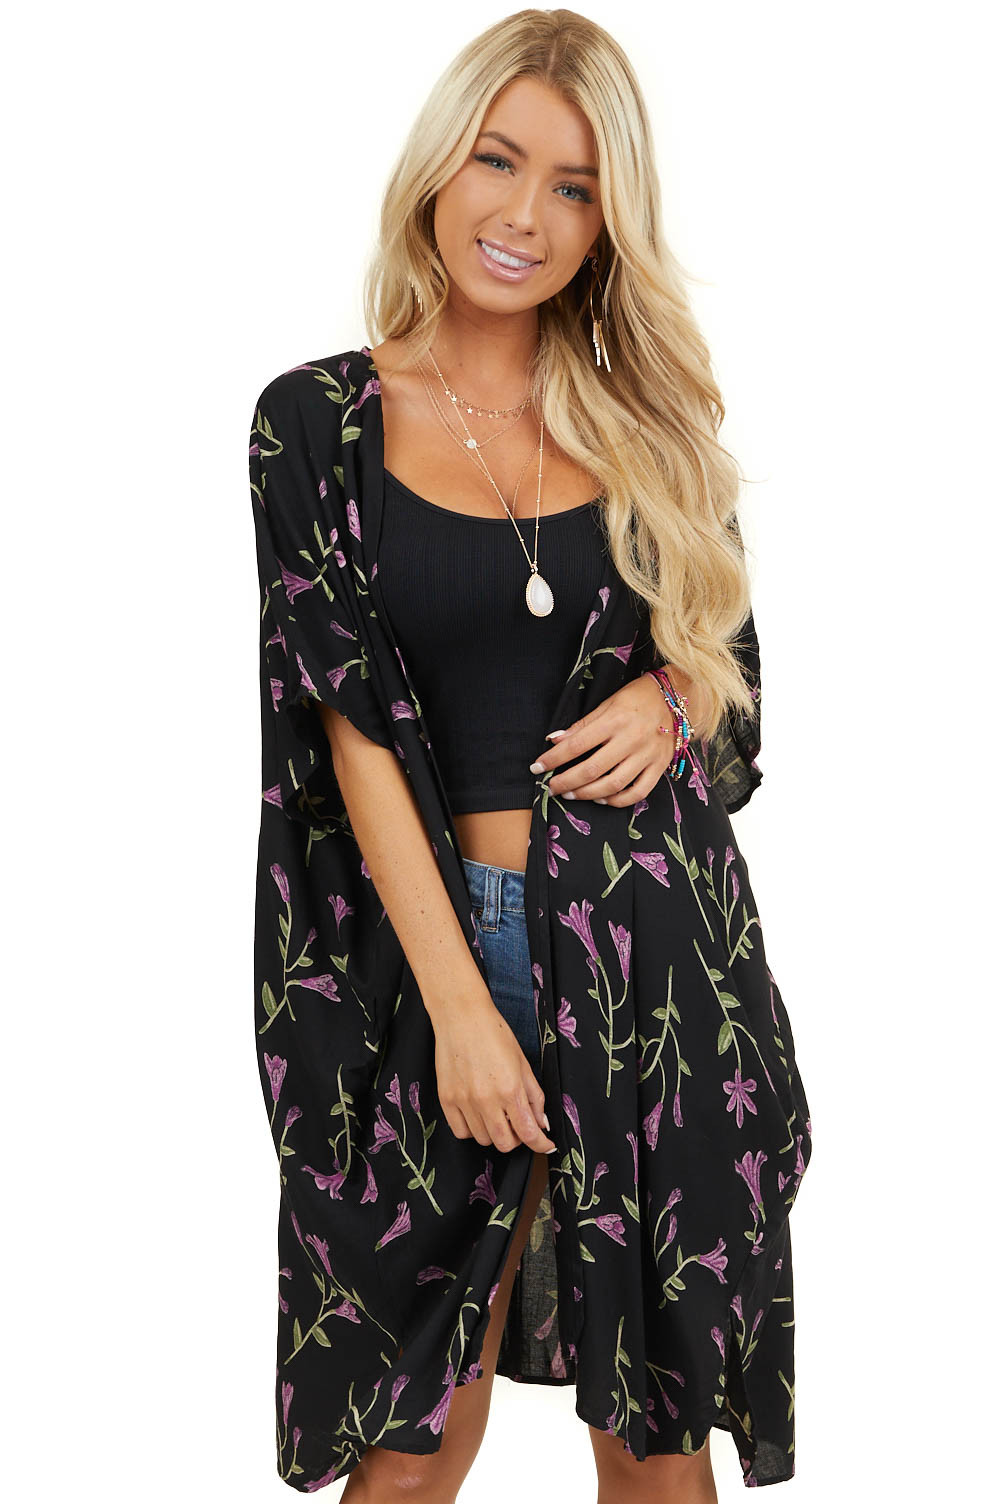 Black Floral Print Short Sleeve Open Kimono with Side Slits